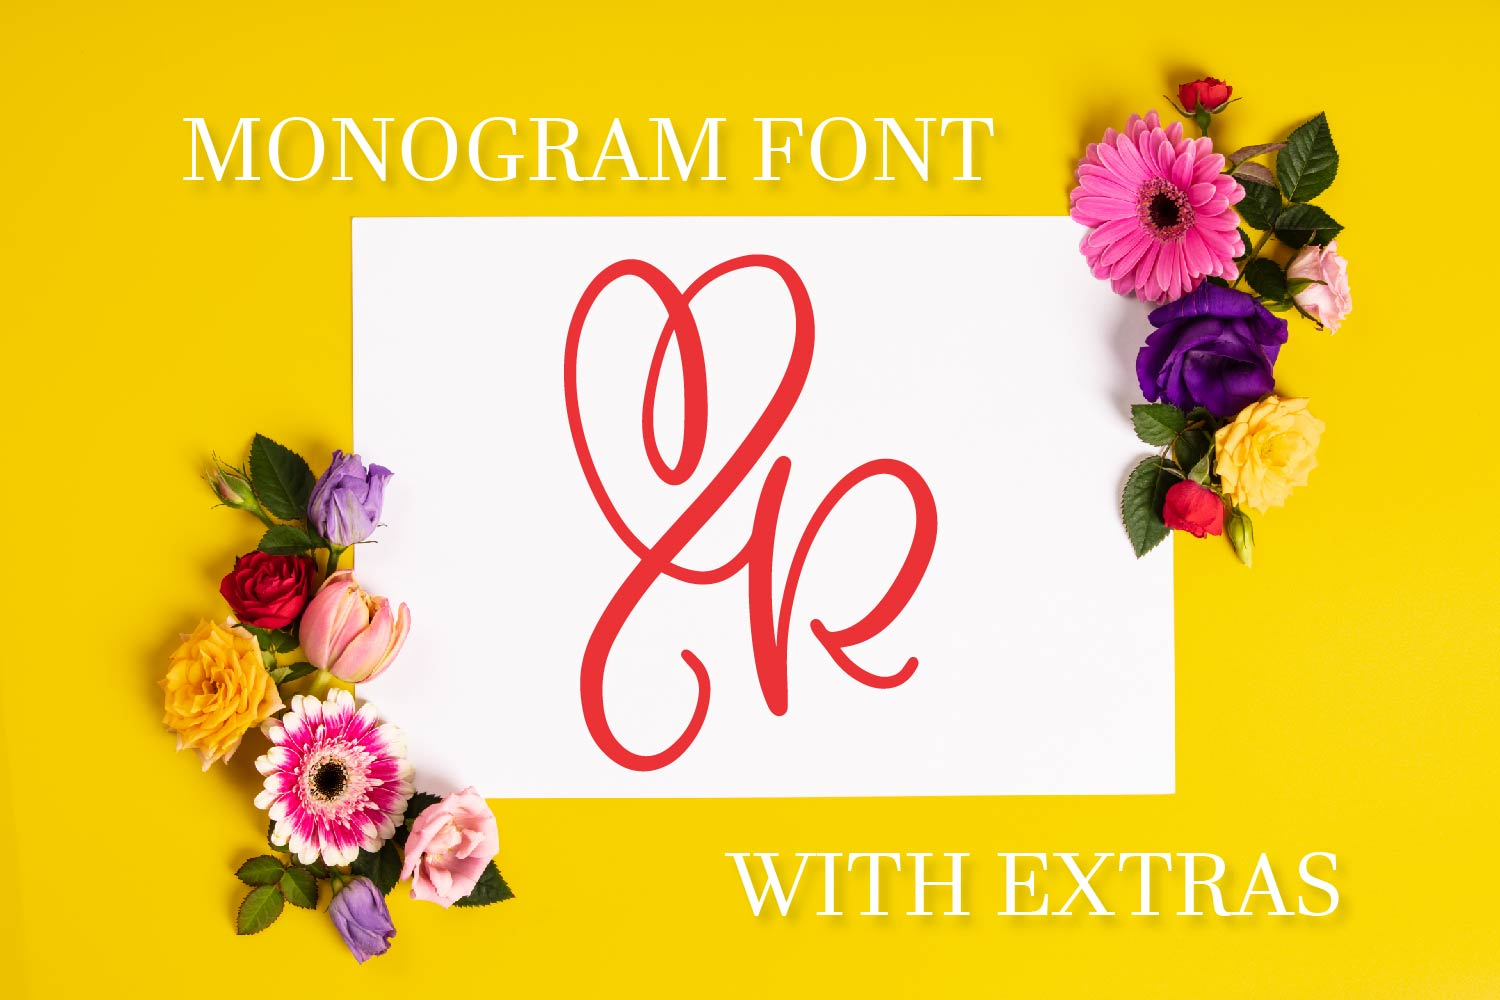 CLN - Monohearts - A Monogram Heart Font with Extra Doodles example image 1